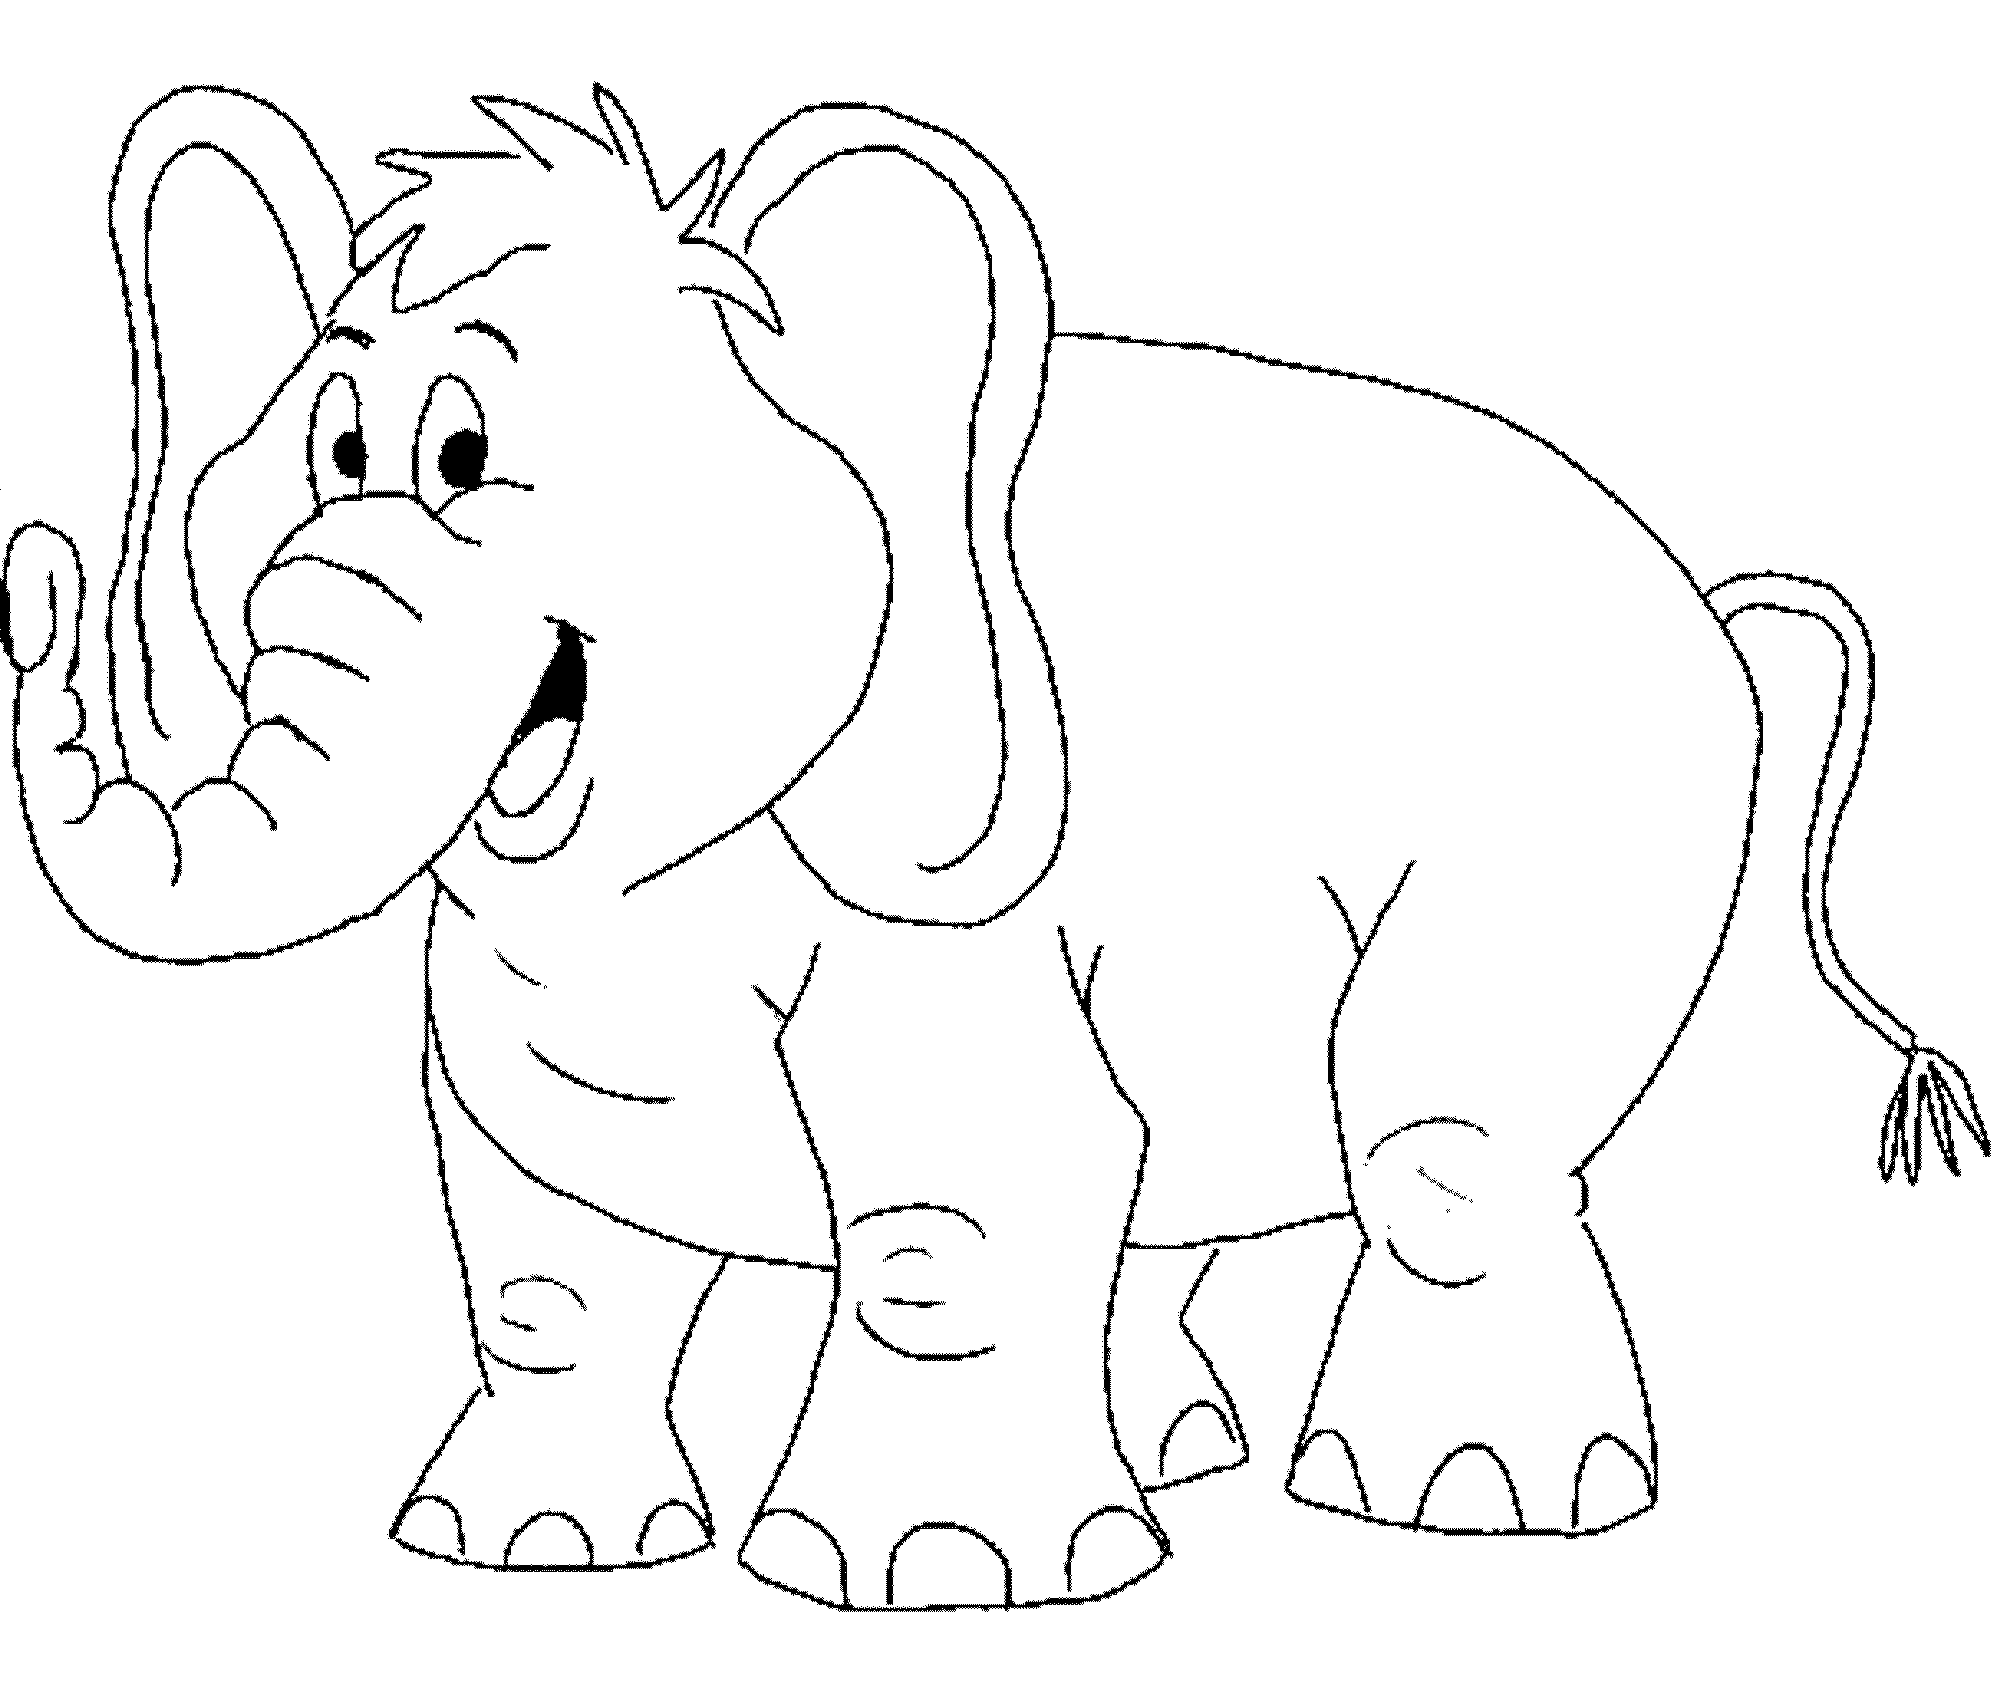 coloring book elephant images free easy to print elephant coloring pages tulamama images coloring elephant book